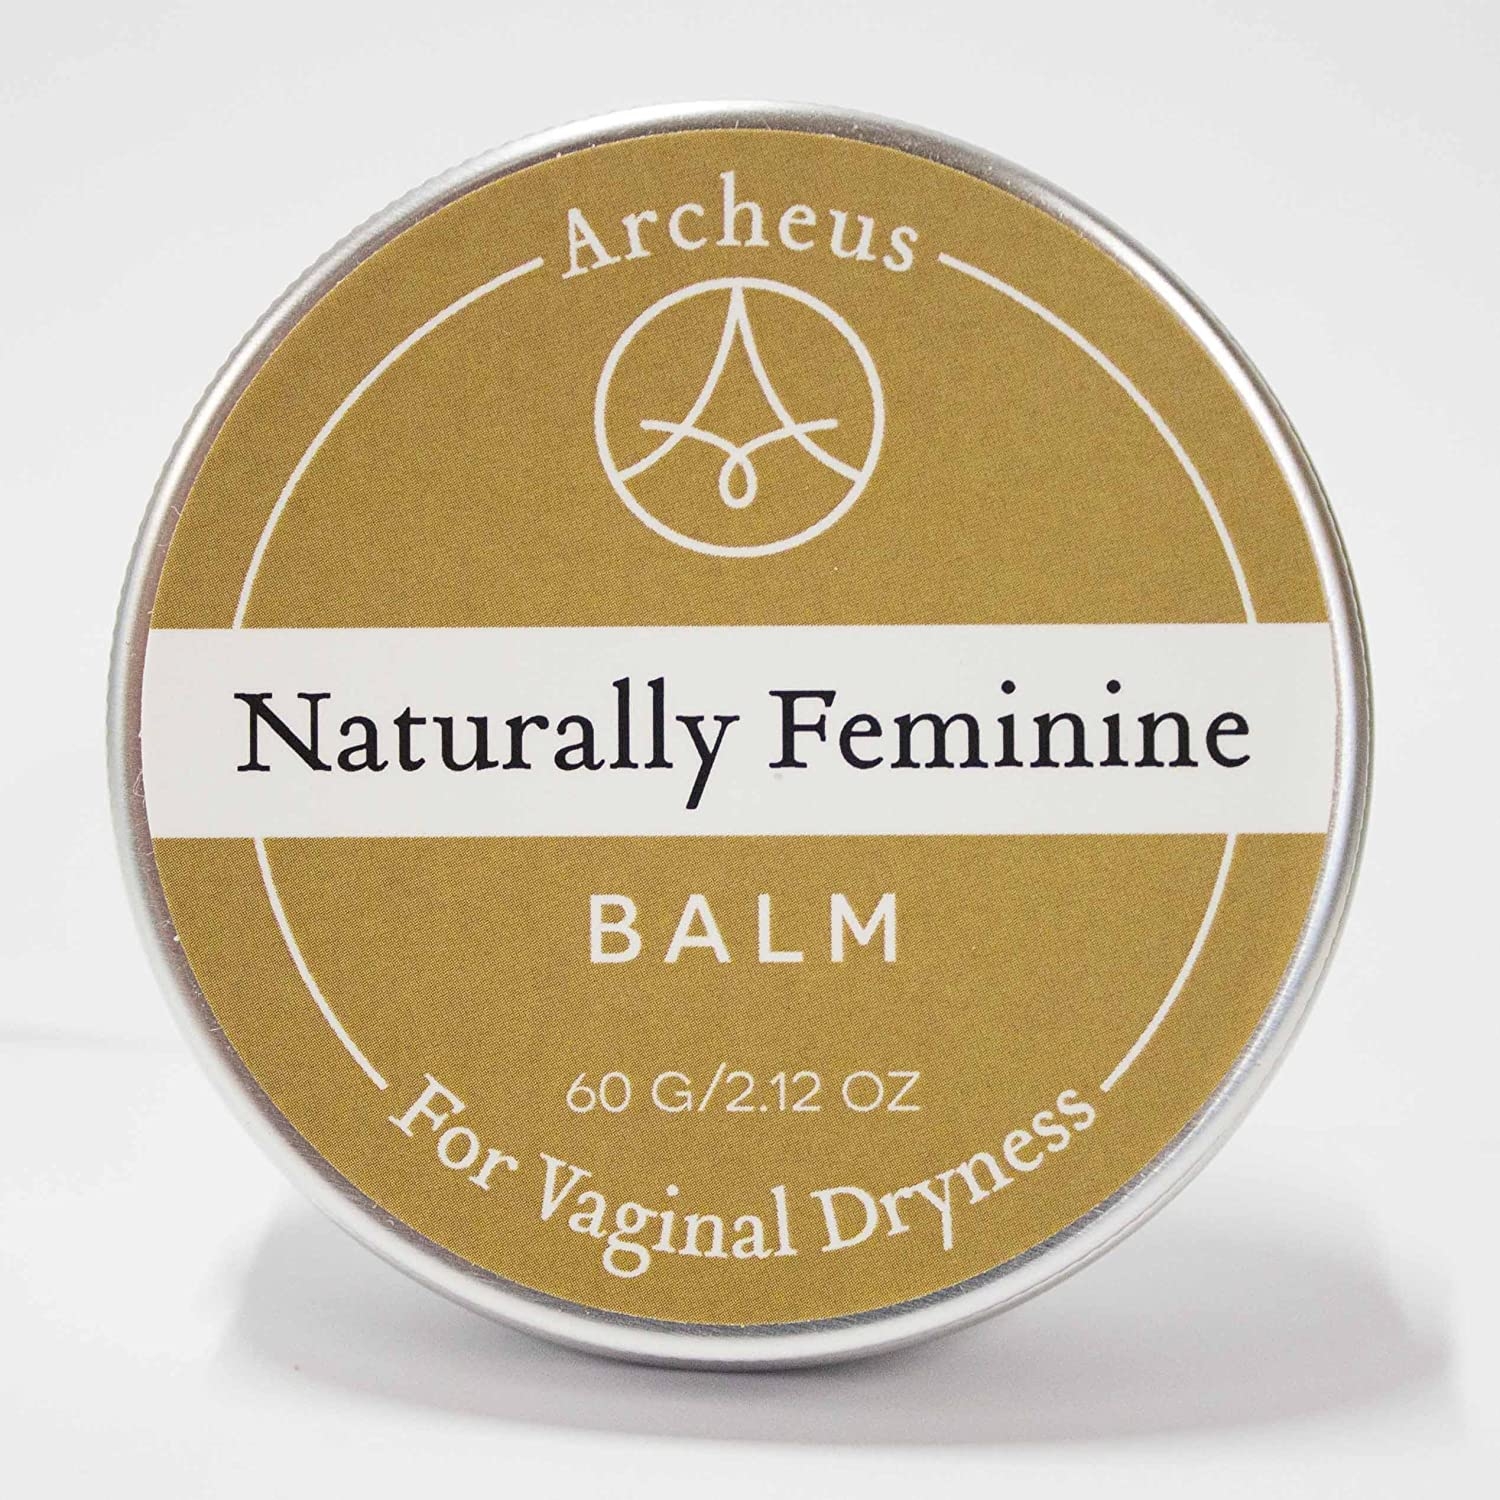 Naturally Feminine Balm - Natural & Organic Balm for Relief from Vaginal Dryness Suitable for use During Menopause for Intimacy and Post-partum